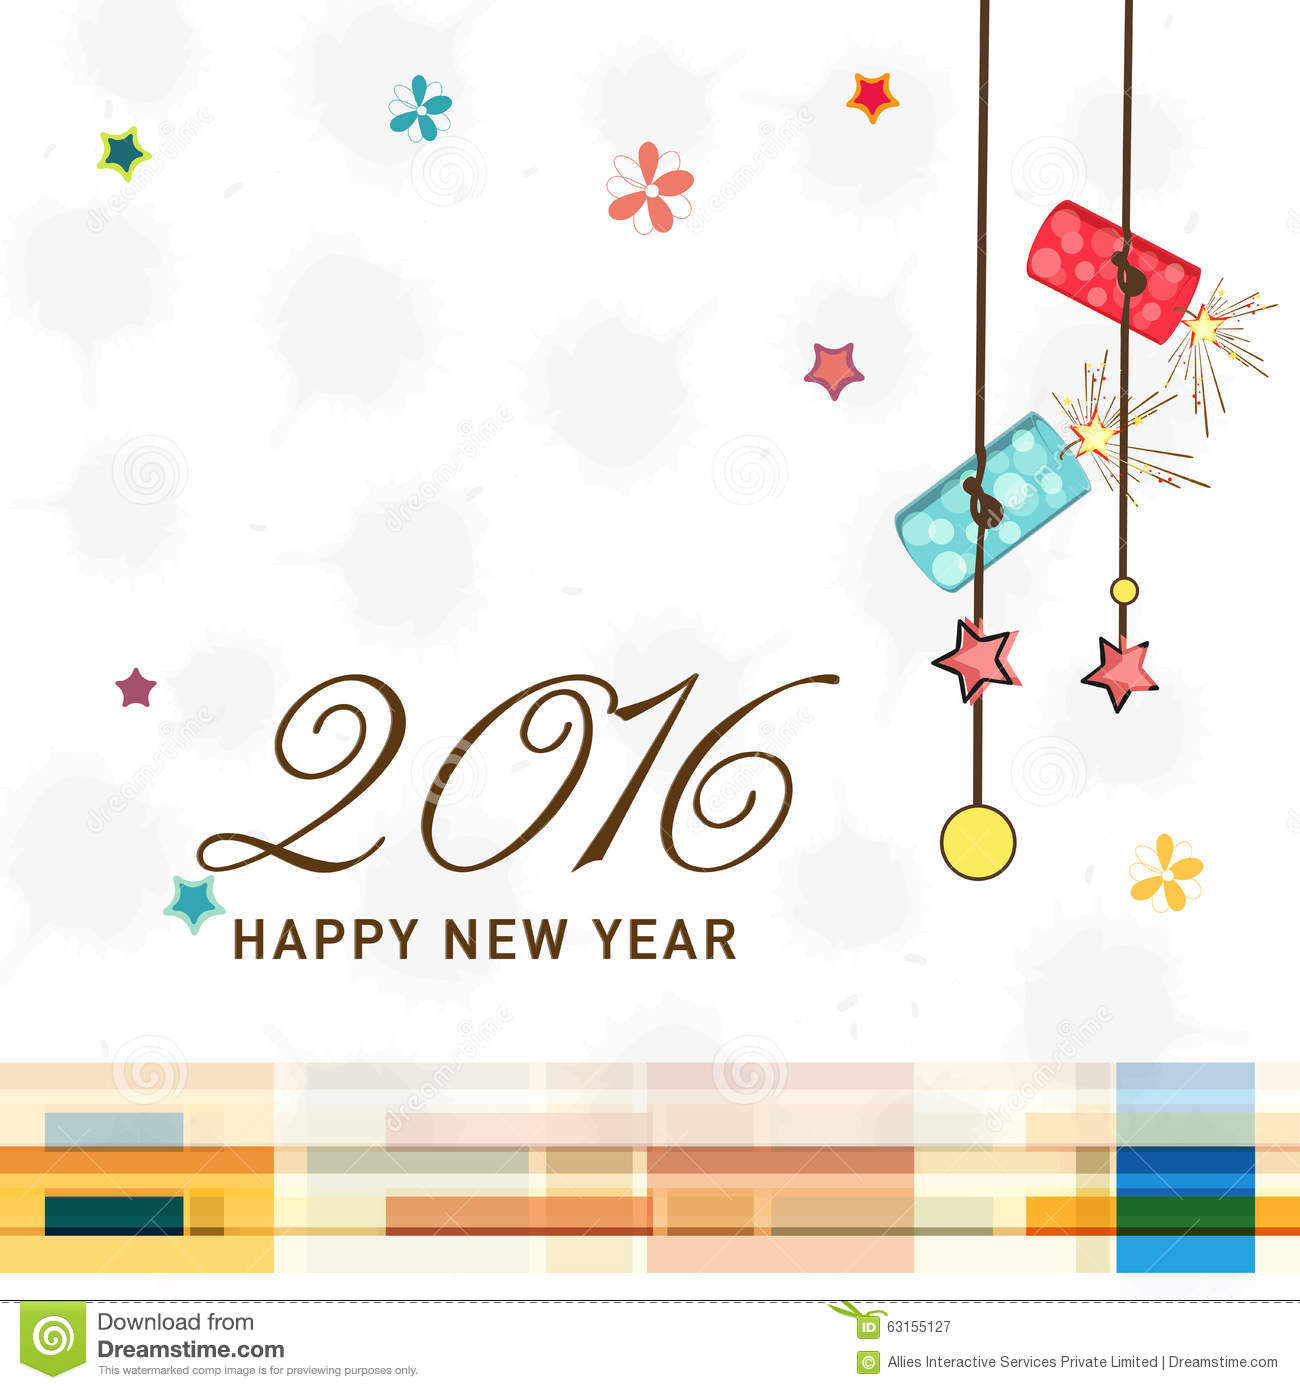 Greeting Card Design For New Year 2016 Celebration. Stock ...